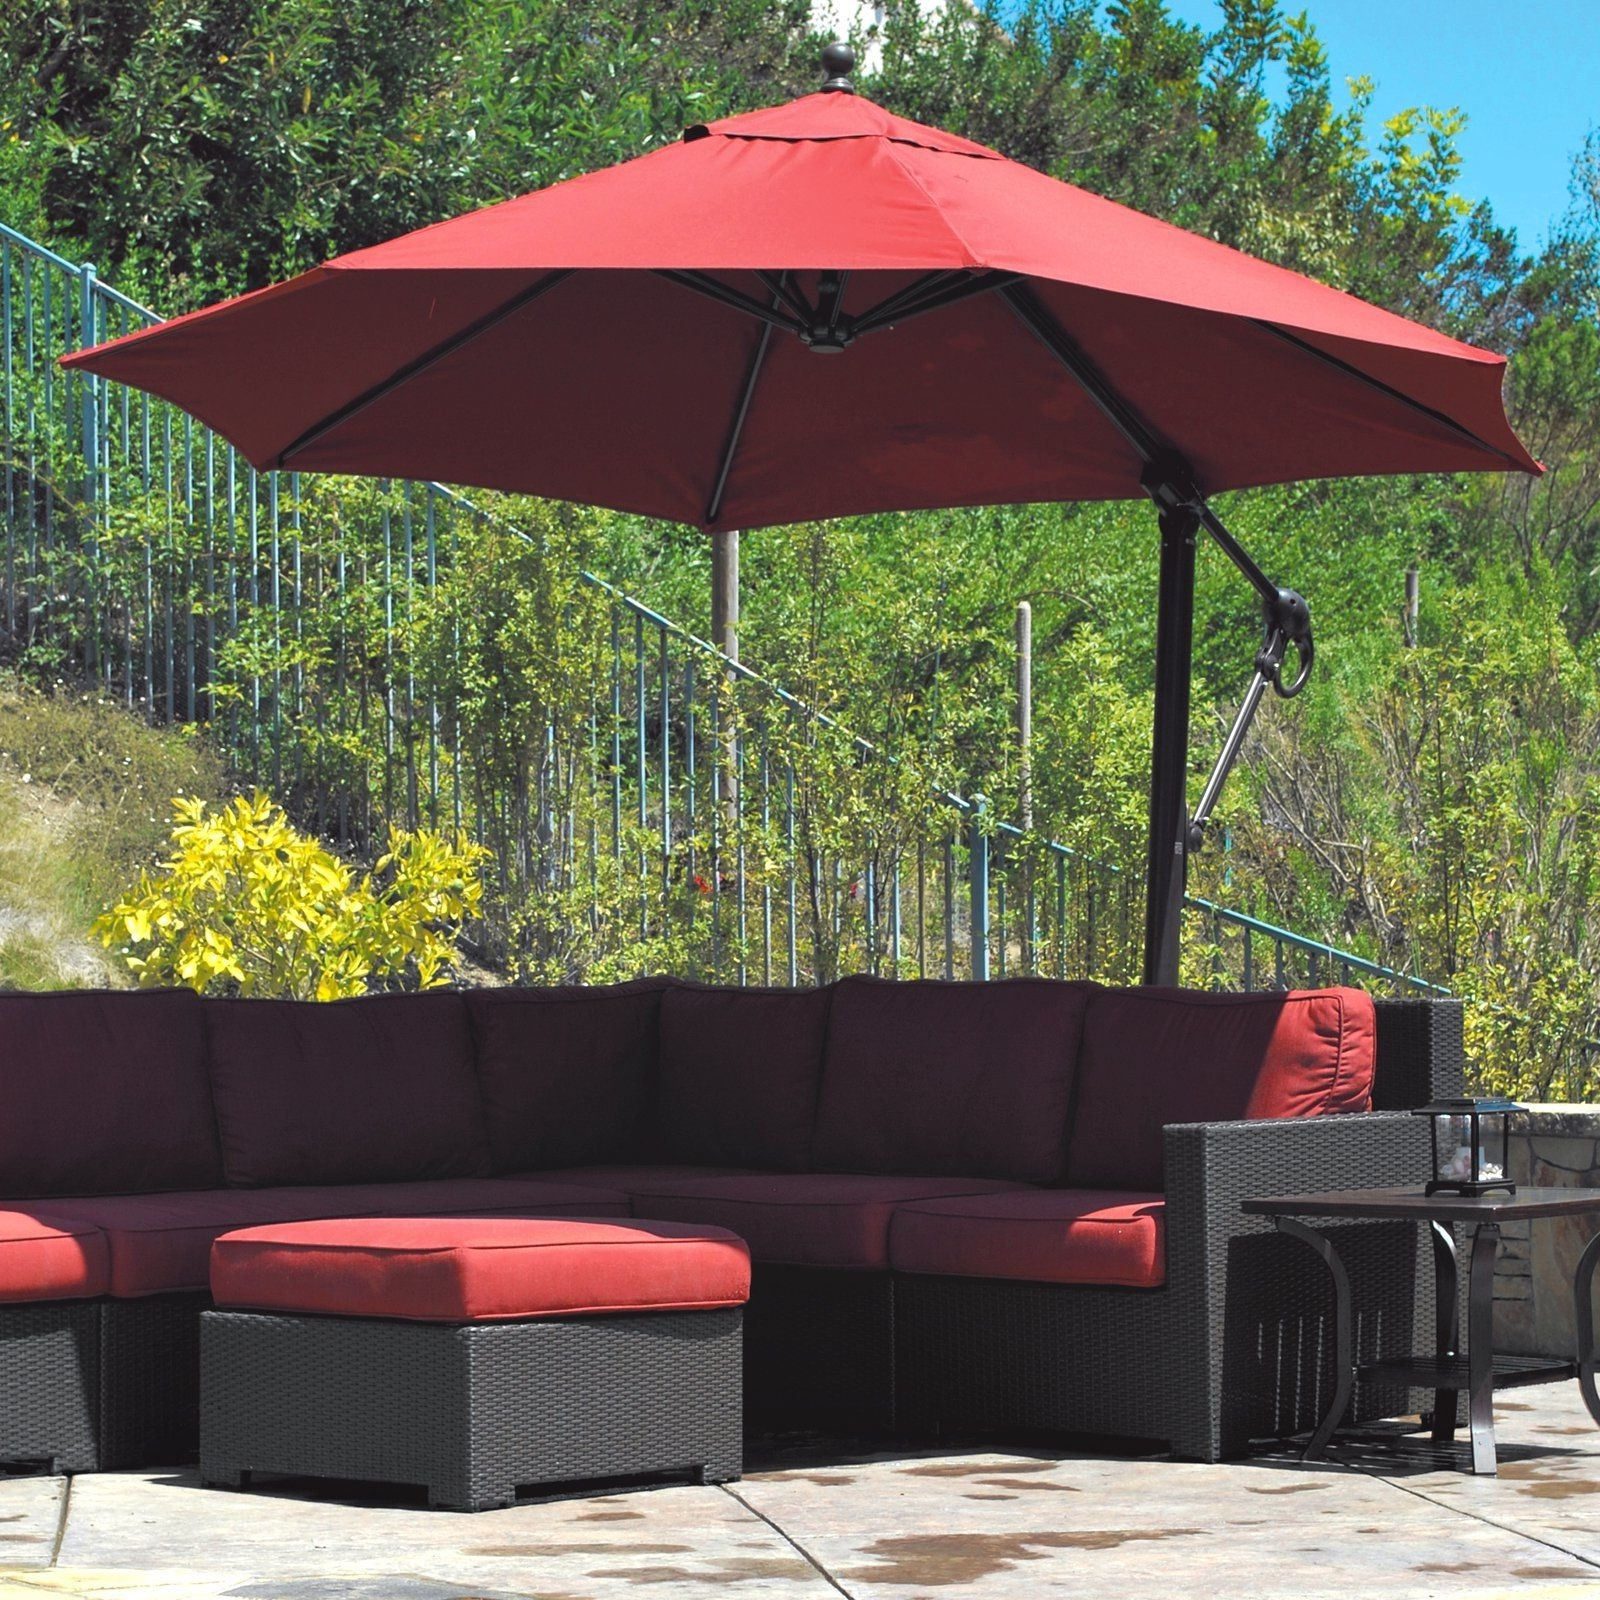 Most Recent Lowes Offset Patio Umbrellas Regarding Lowes Patio Umbrellas Luxury Umbrella Sale Elegant Cool – Home (View 10 of 20)